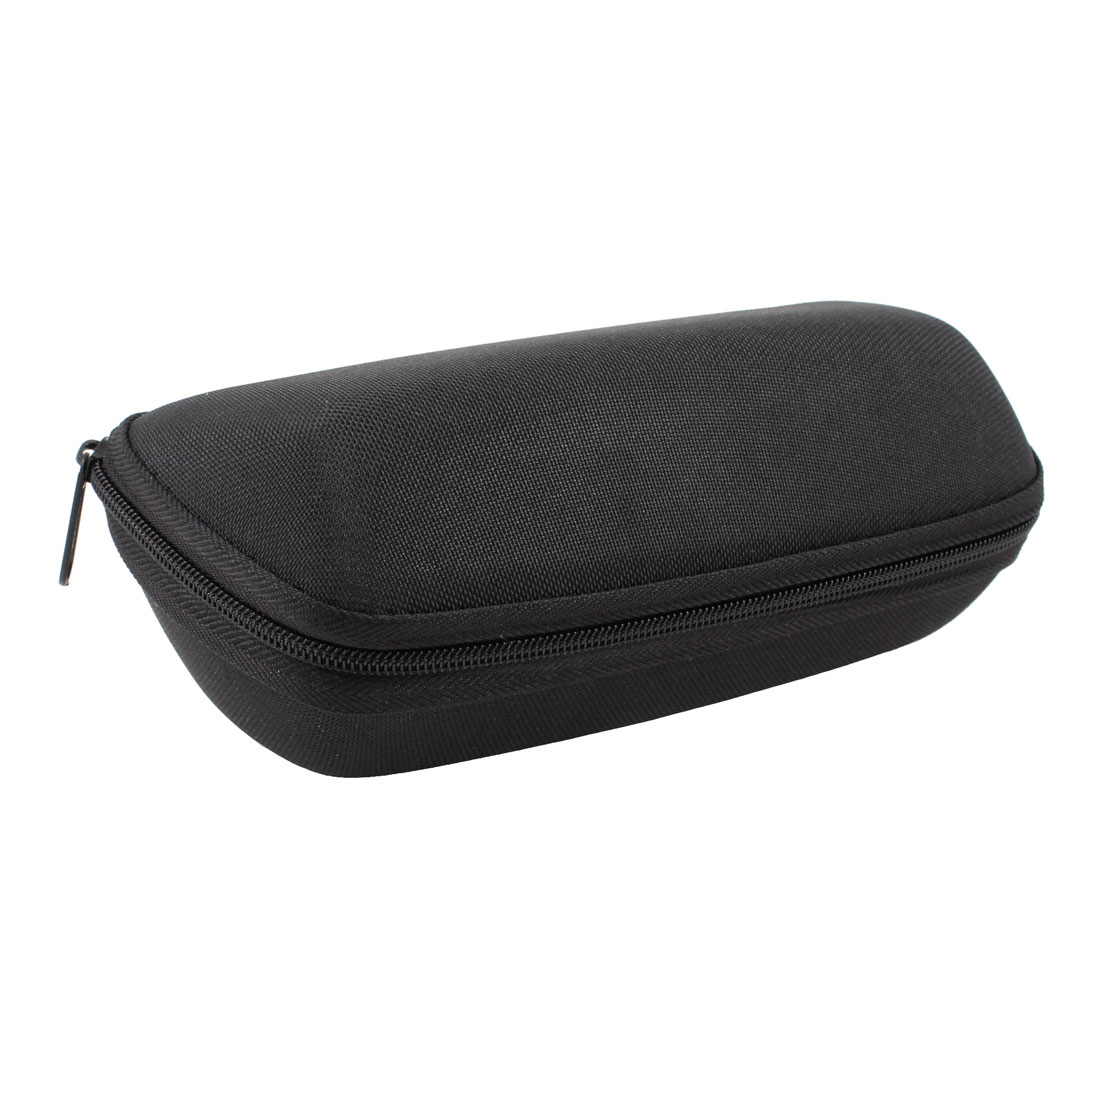 Fleece Lining Textured Zip up Plano Glasses Eyeglasses Case Black